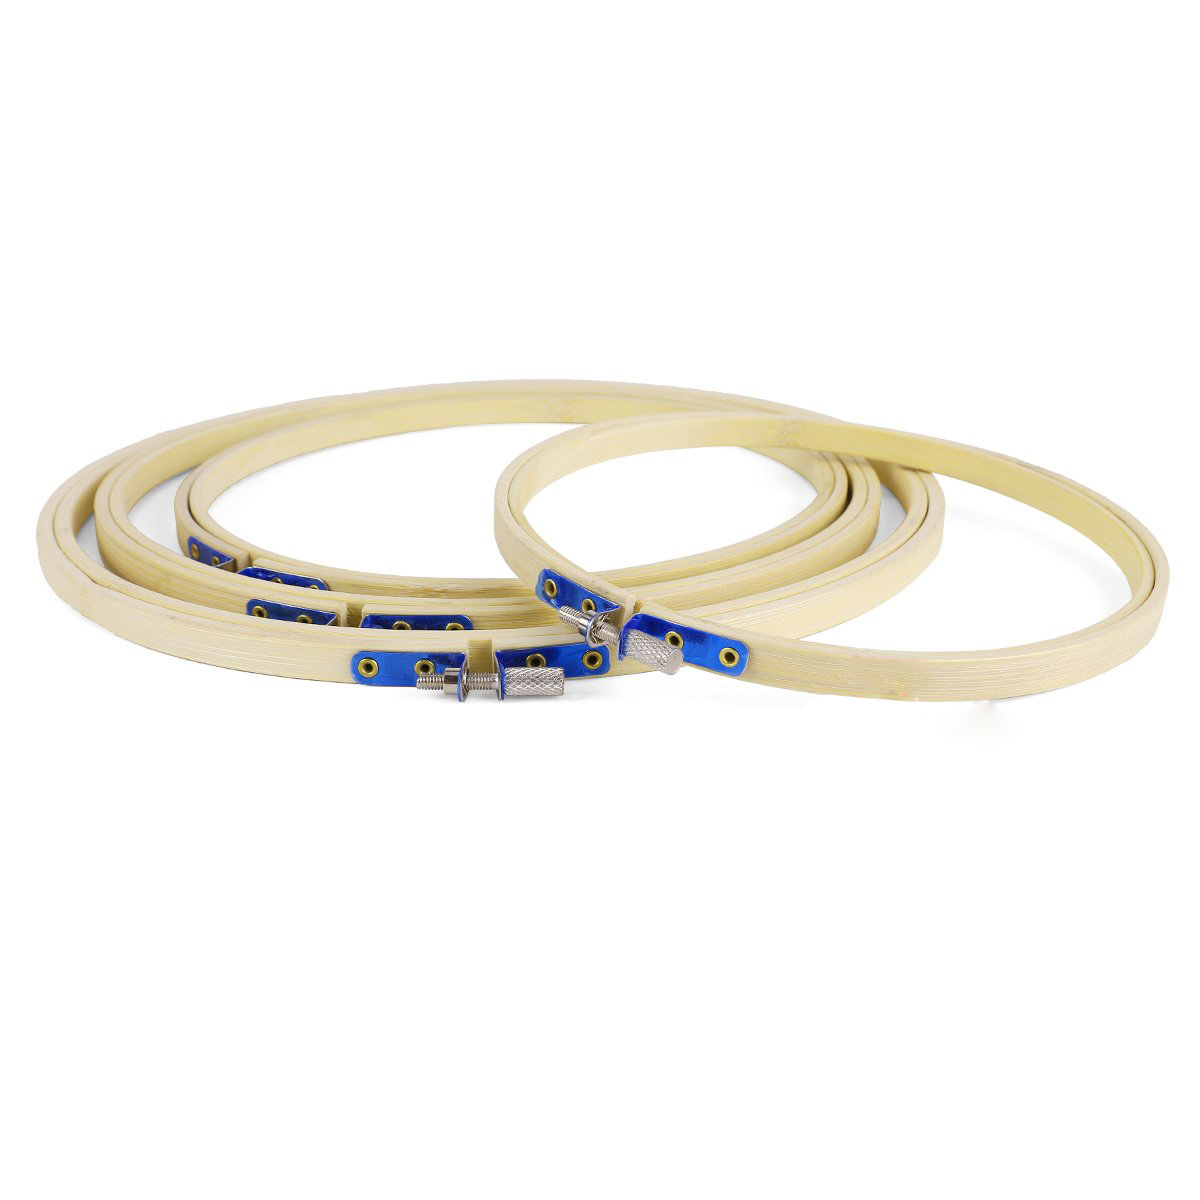 2X-4x-Embroidery-hoop-bamboo-Circle-Embroidery-cross-stitch-17-20-23-26cm-DW